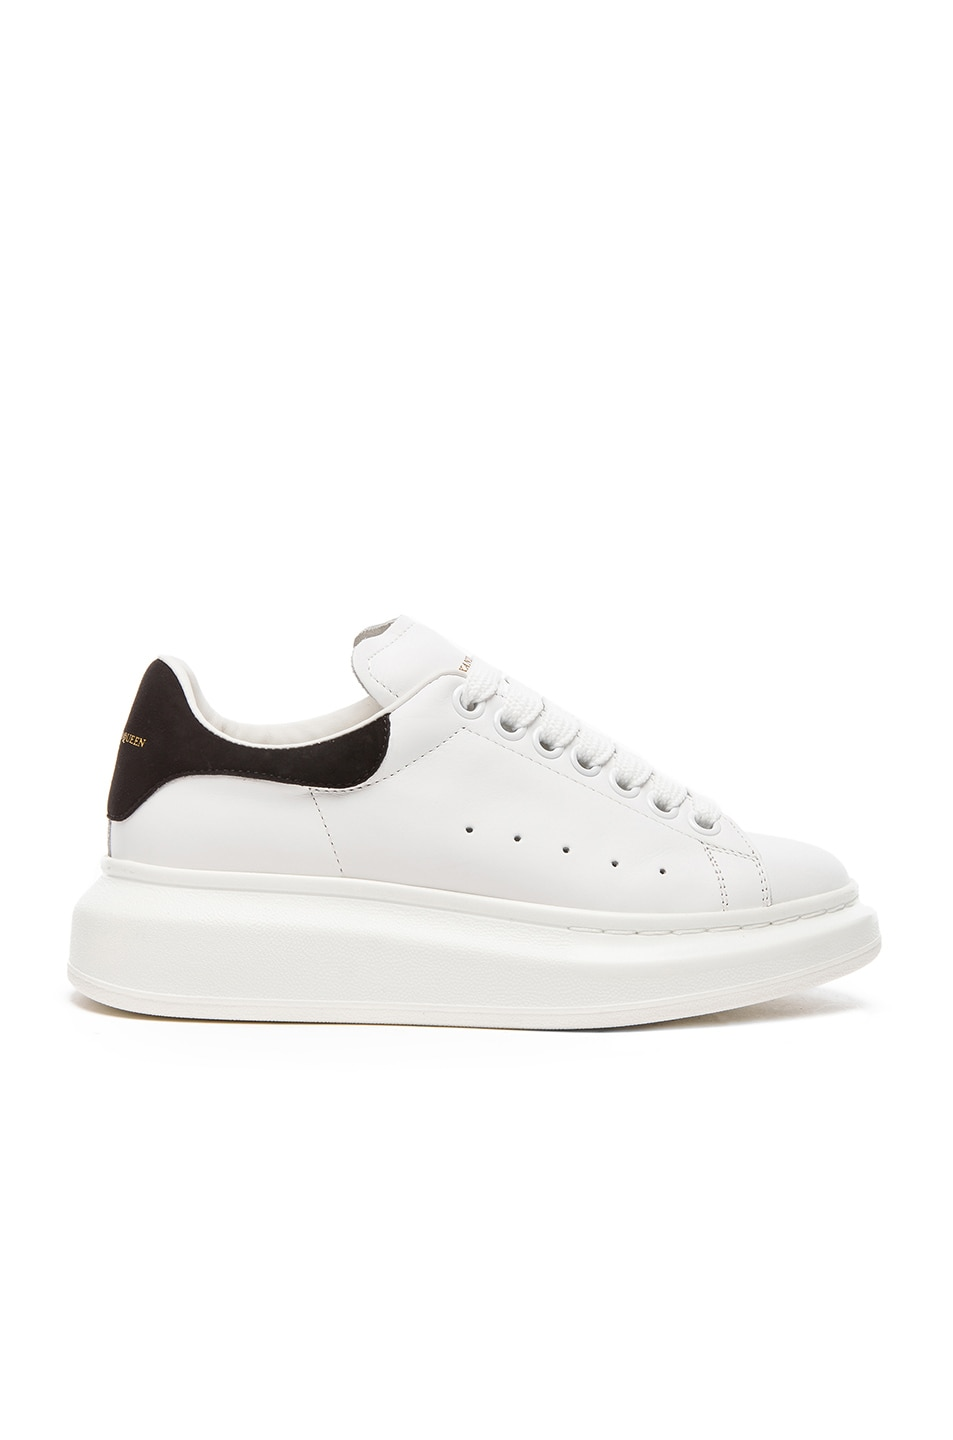 Sneakers for Women On Sale, Black, Leather, 2017, 4 6 Alexander McQueen